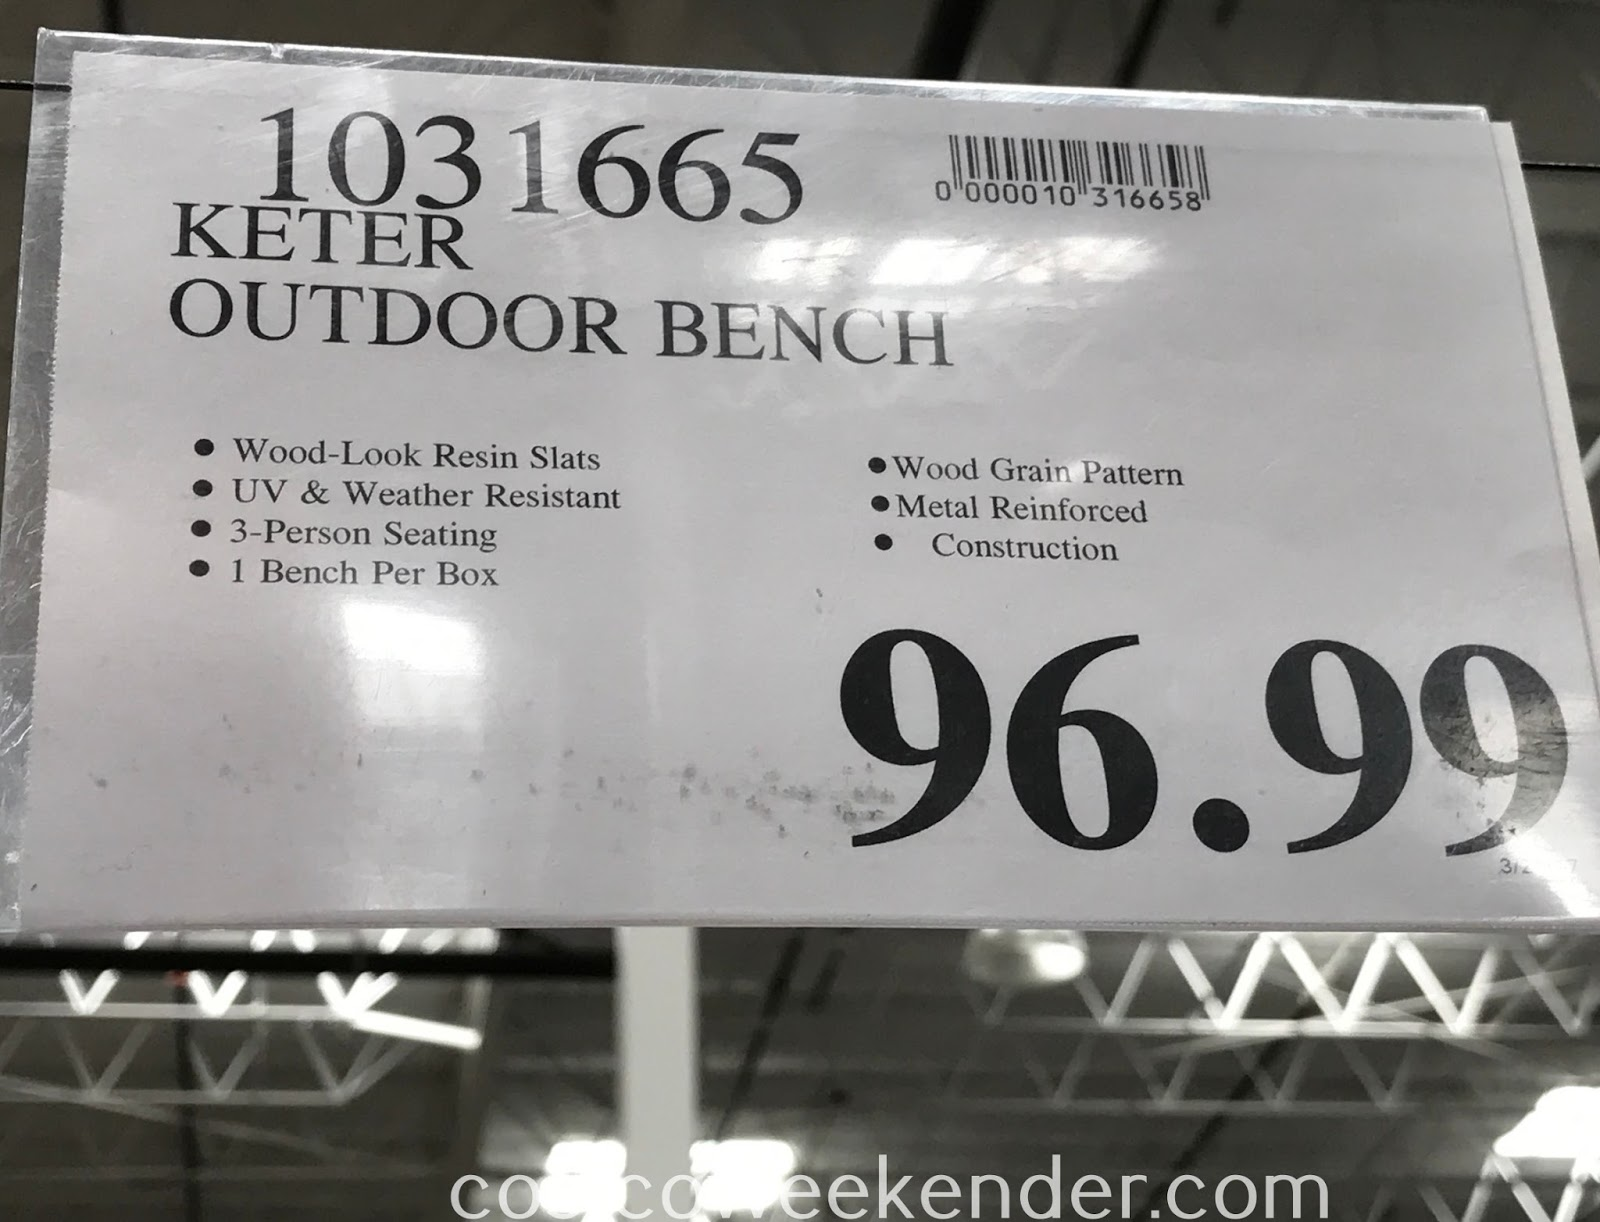 Deal for the Keter Outdoor Bench at Costco